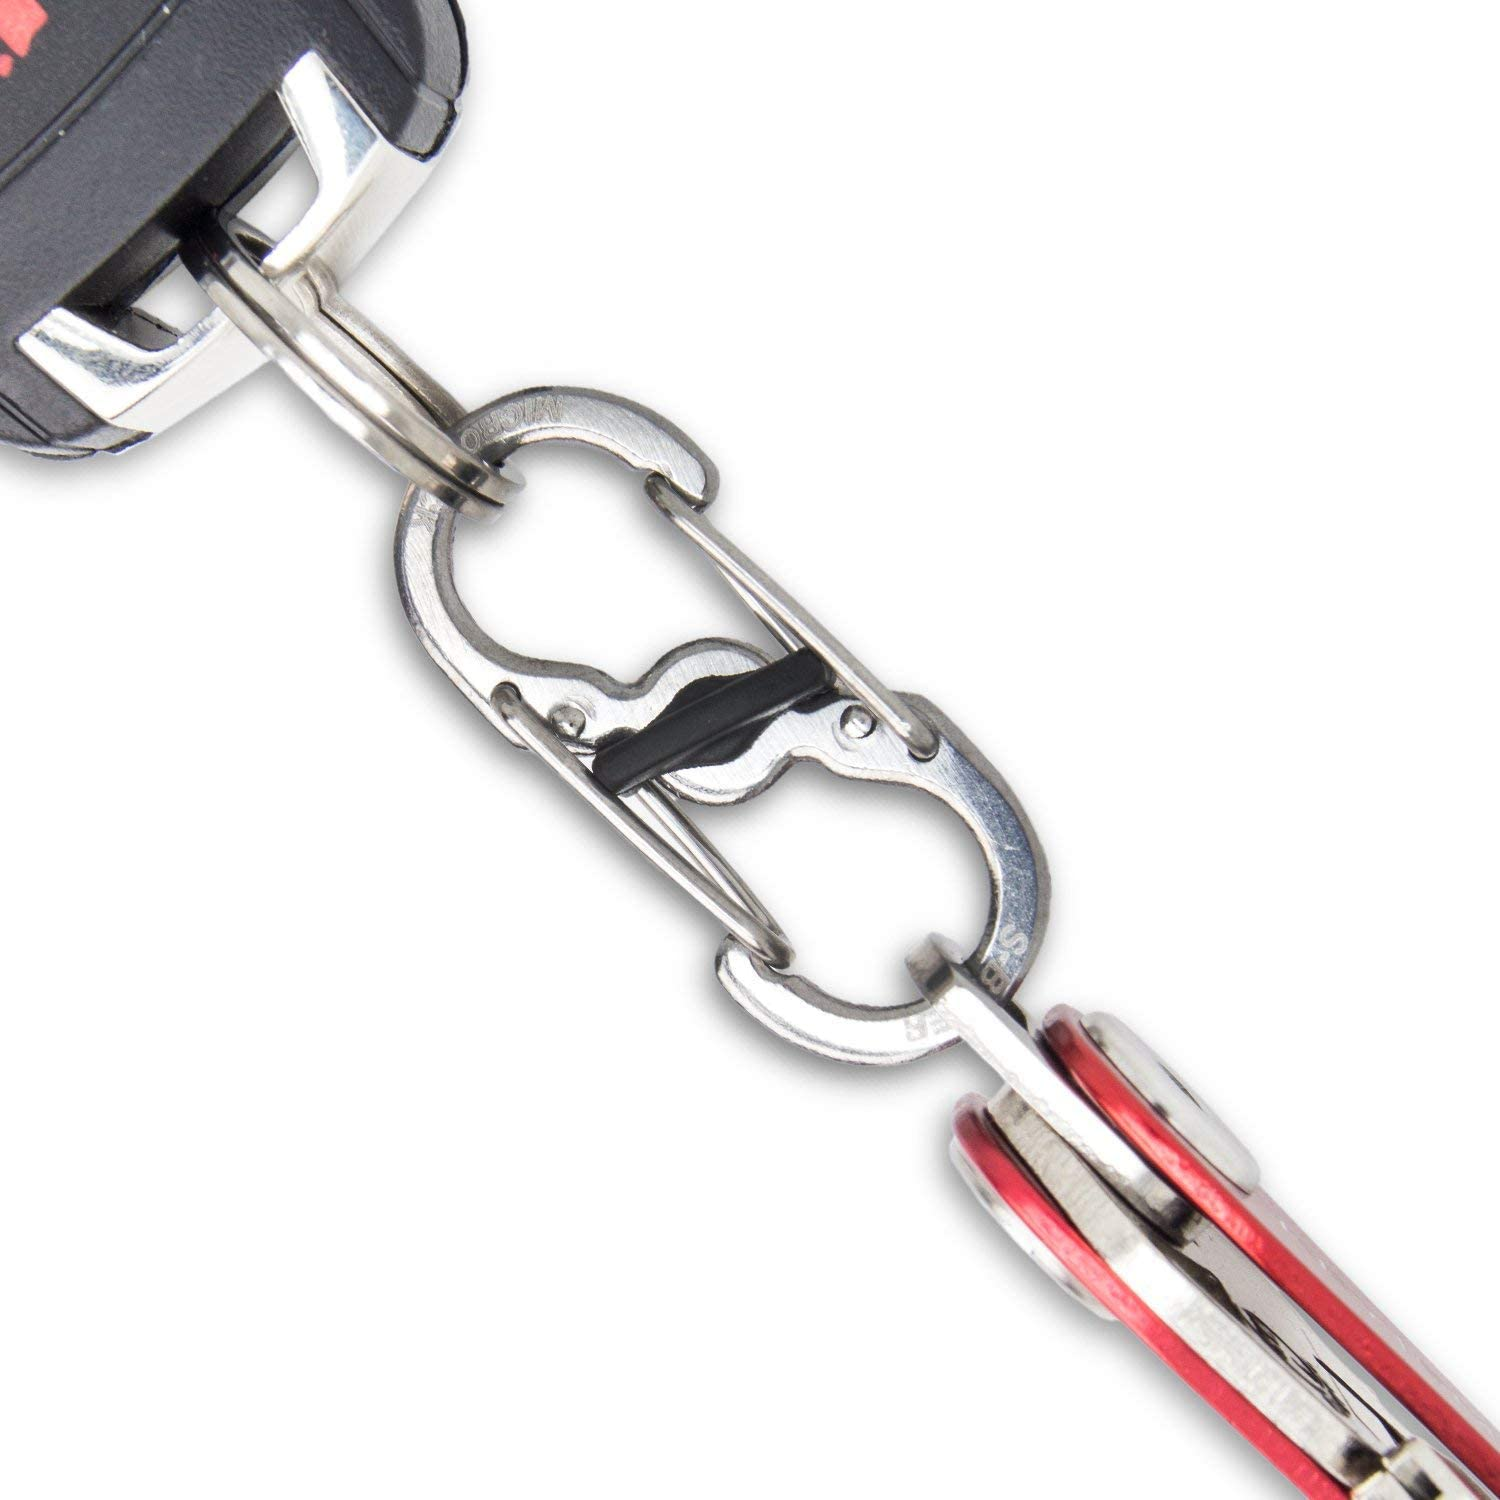 KEYSMART Silver Quick Disconnect, convenient, hiking, camping, secured,safety, outdoor, activity, key, key holder, key lock